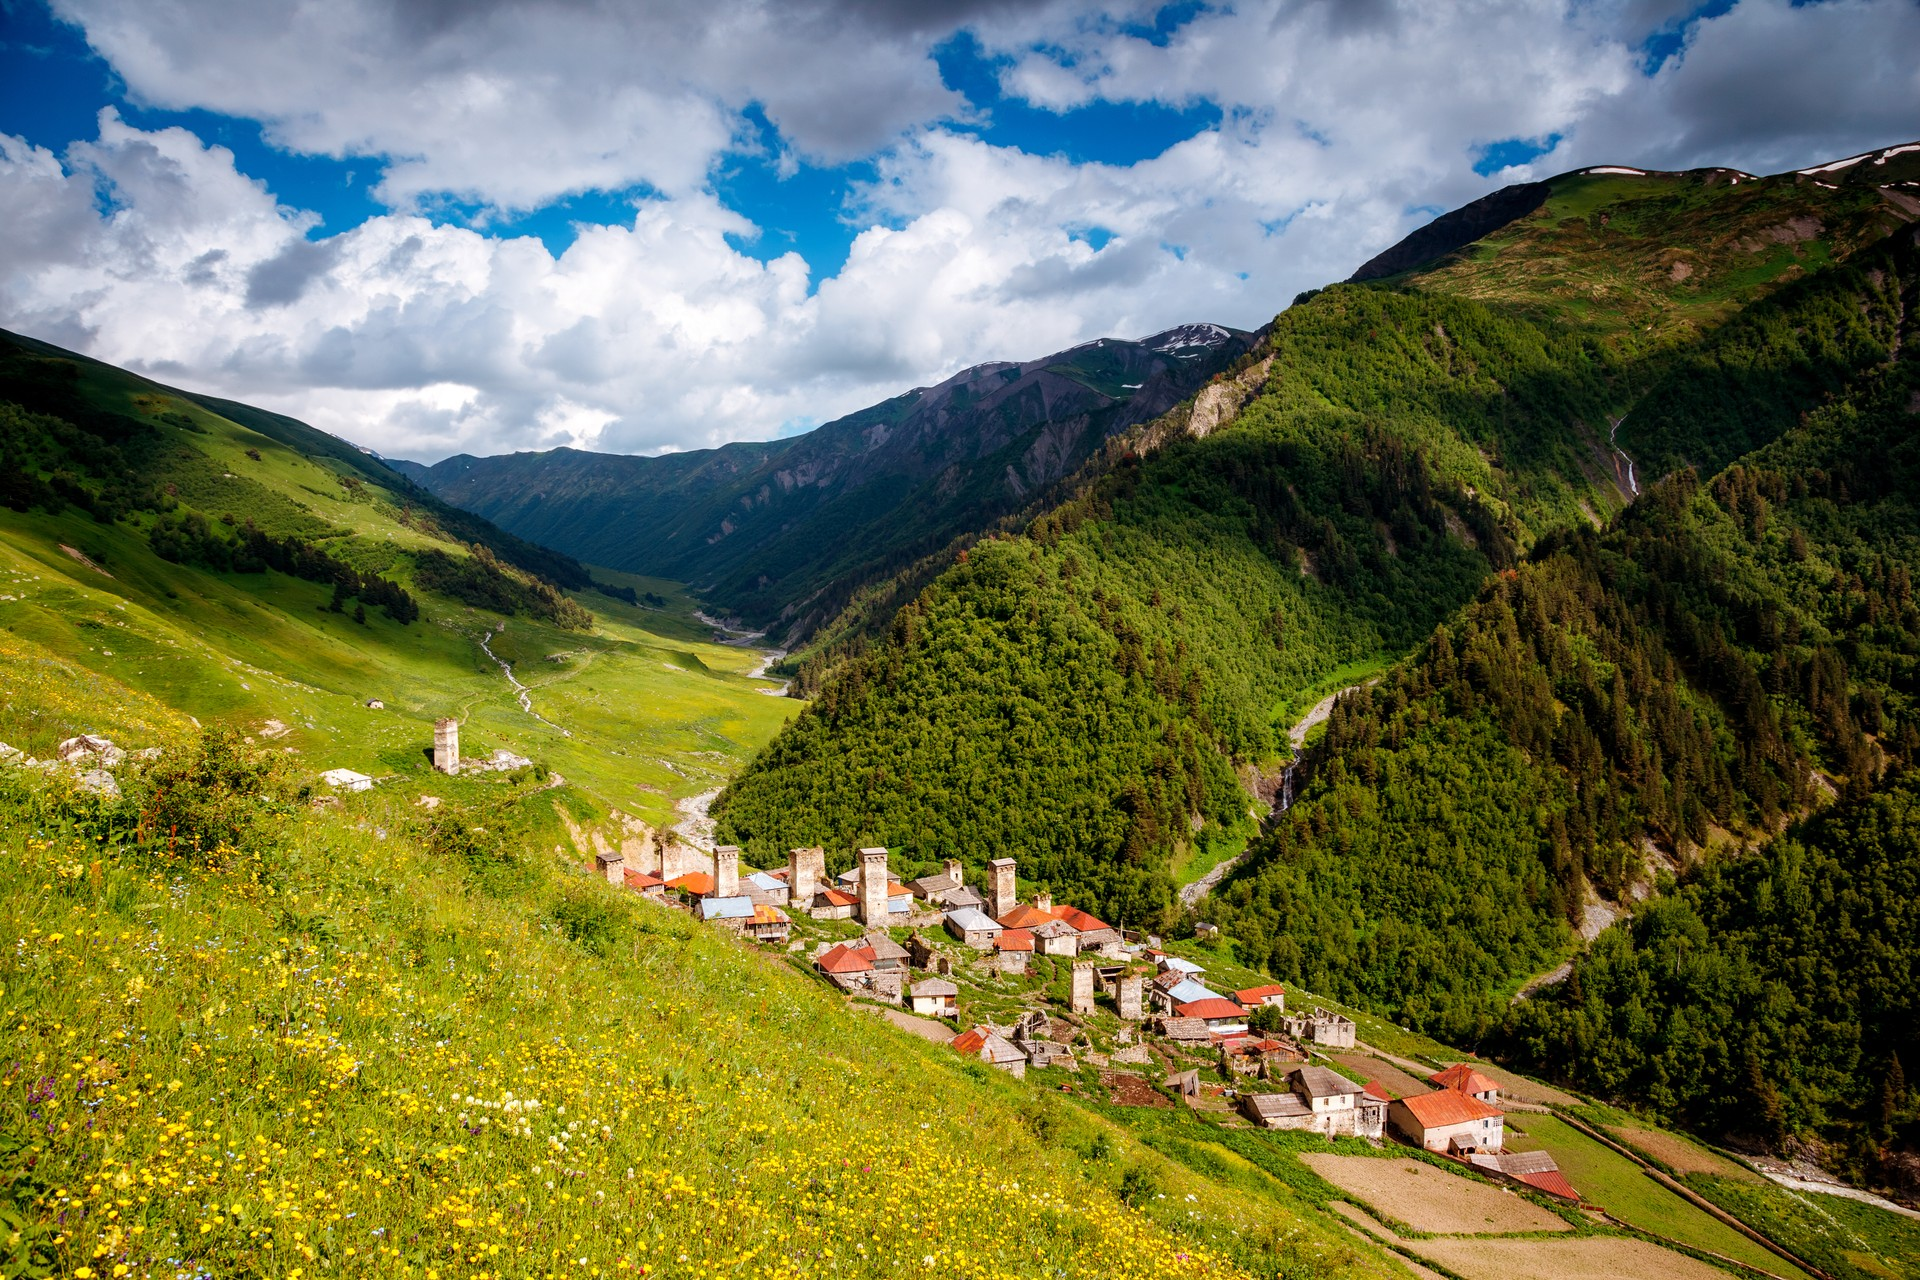 Picturesque villages are dotted throughout the Caucasus region